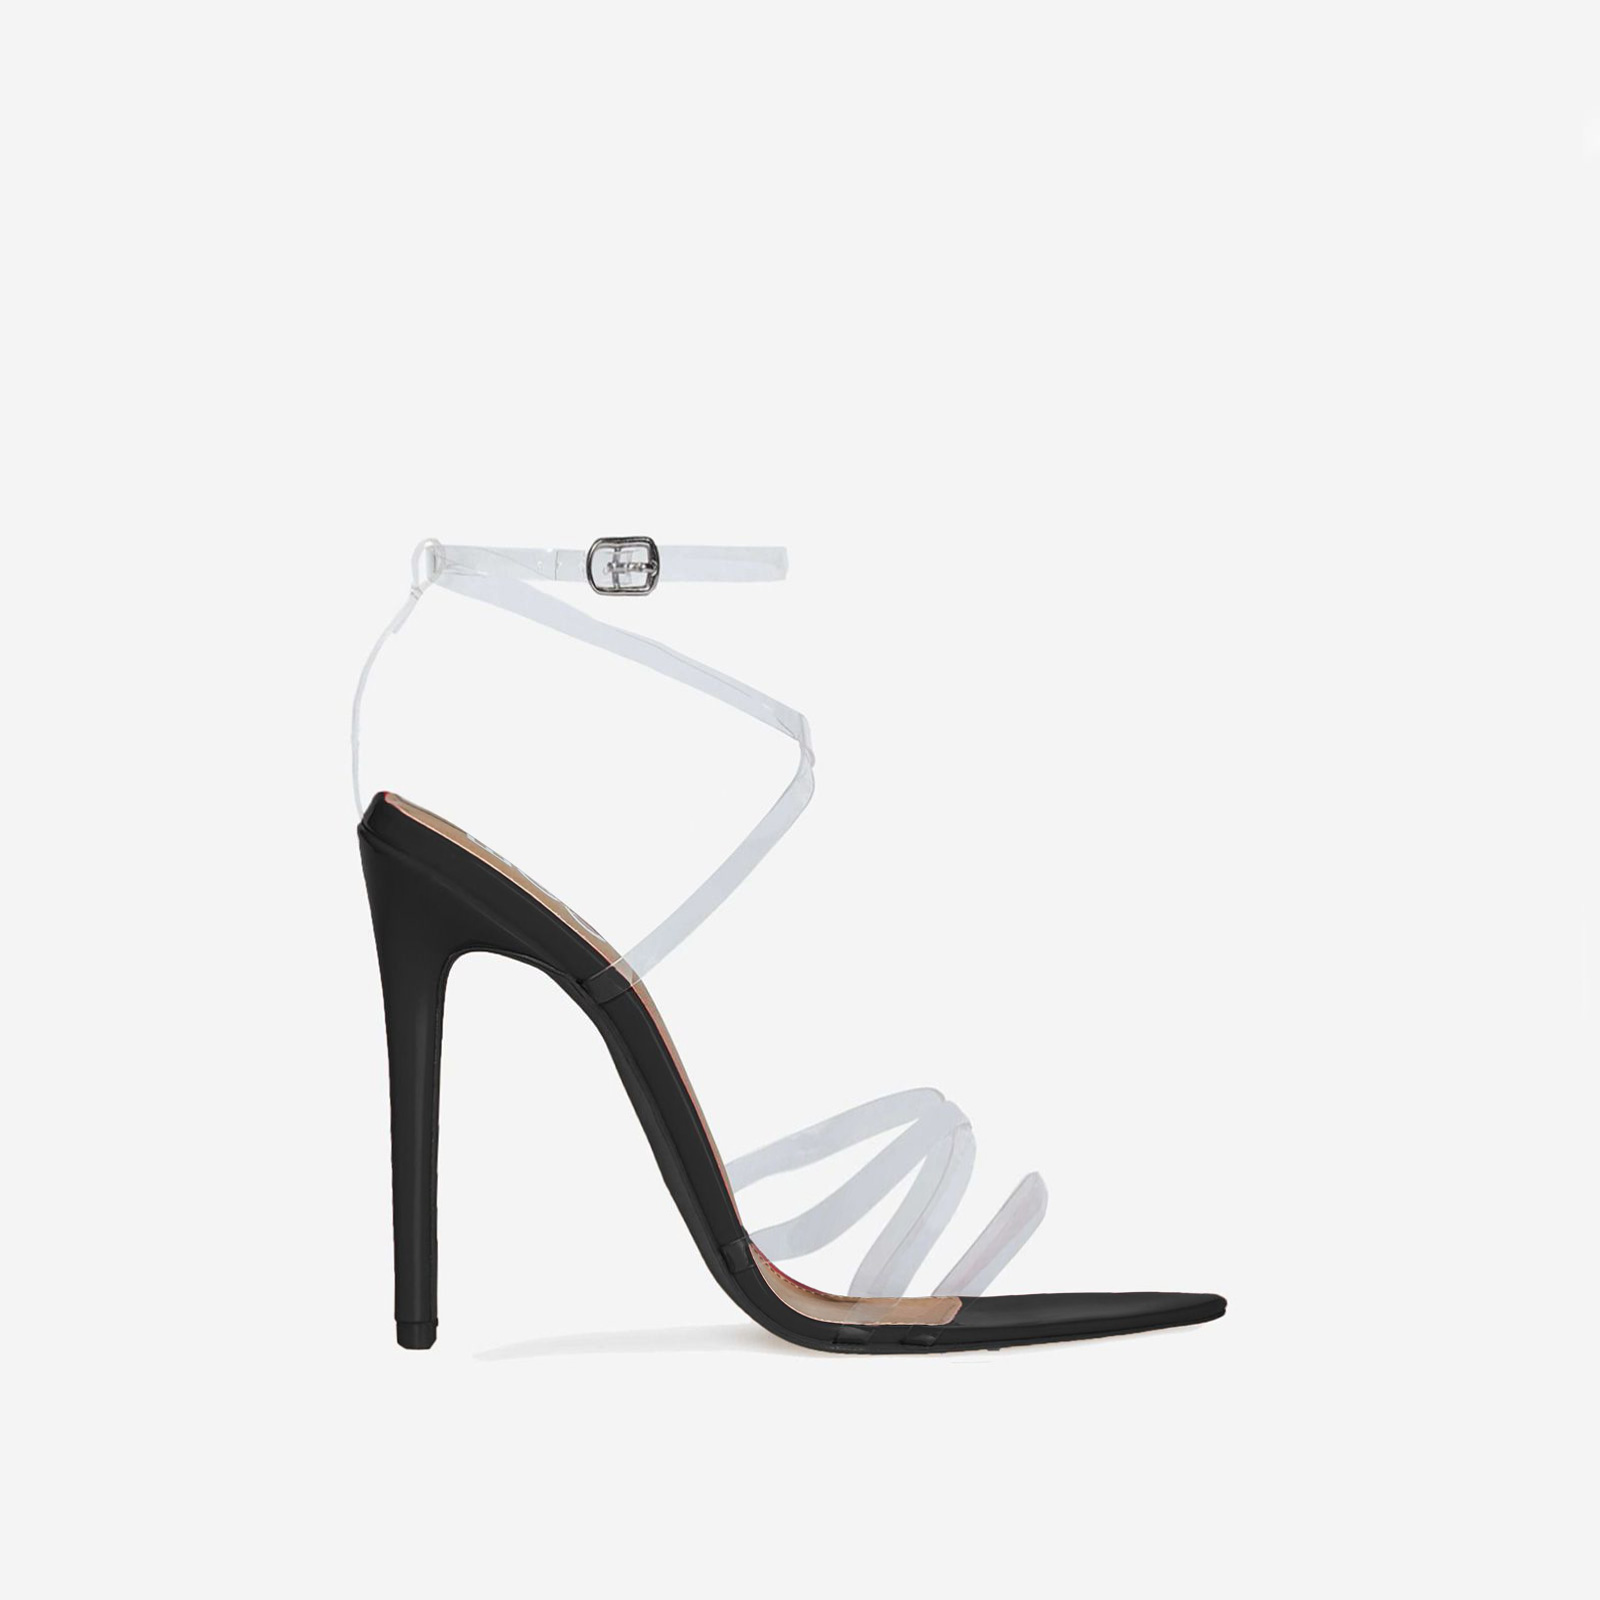 Tiffany Pointed Perspex Barely There Heel In Black Patent